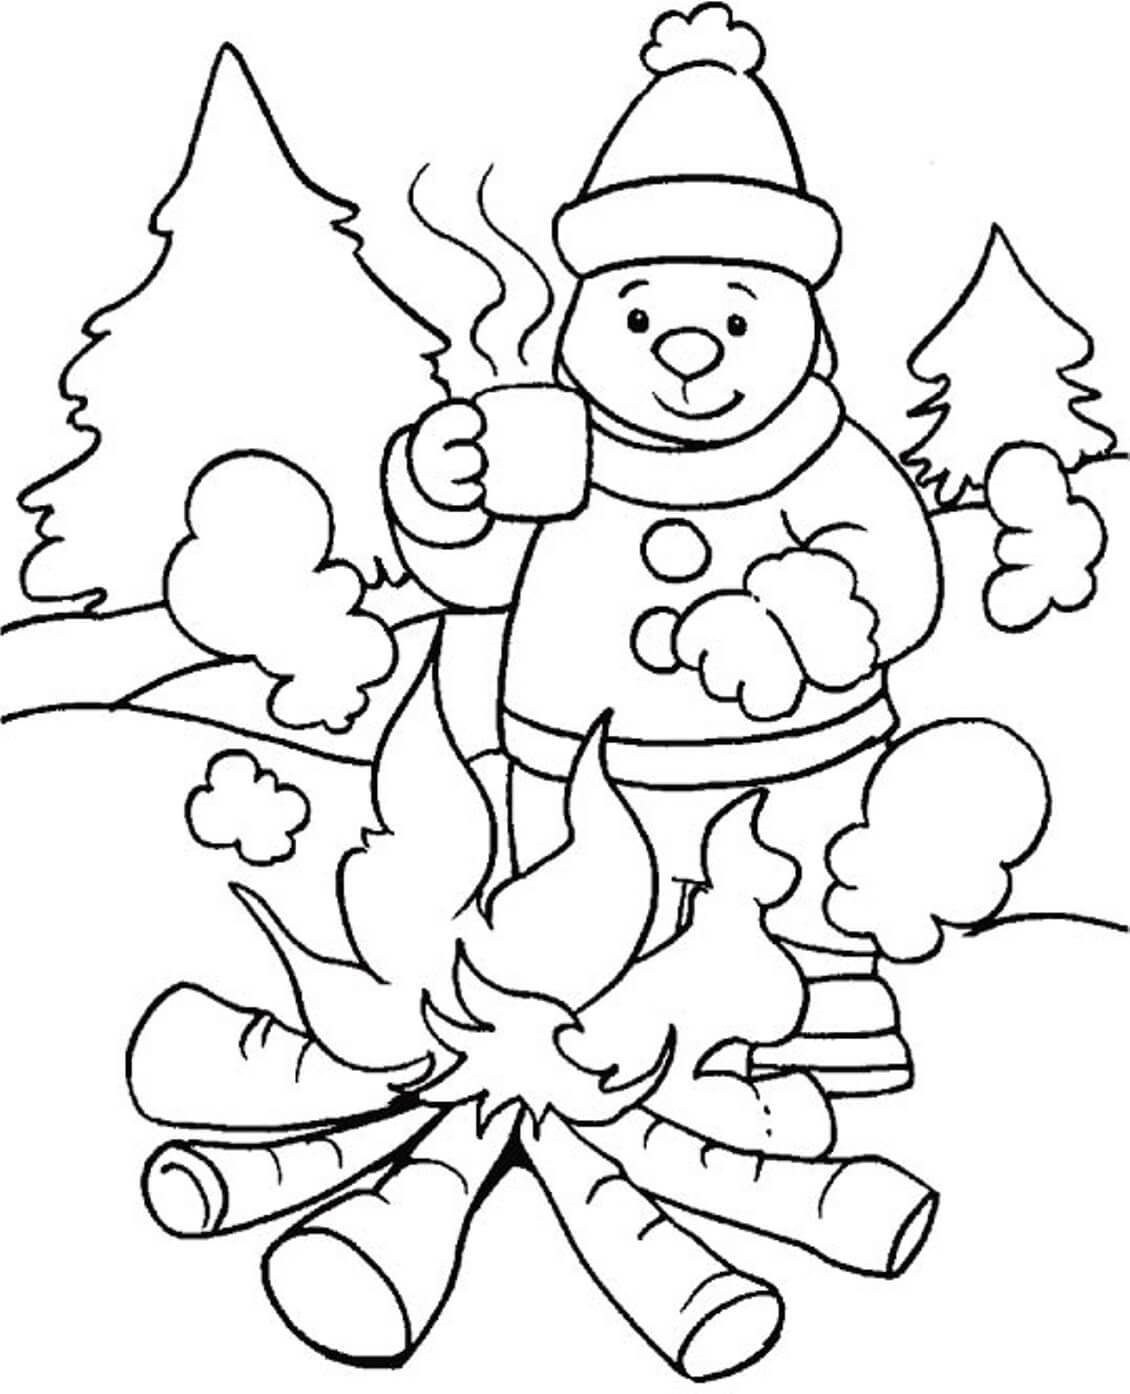 Free Printable Winter Coloring Pages   winter coloring pages  free